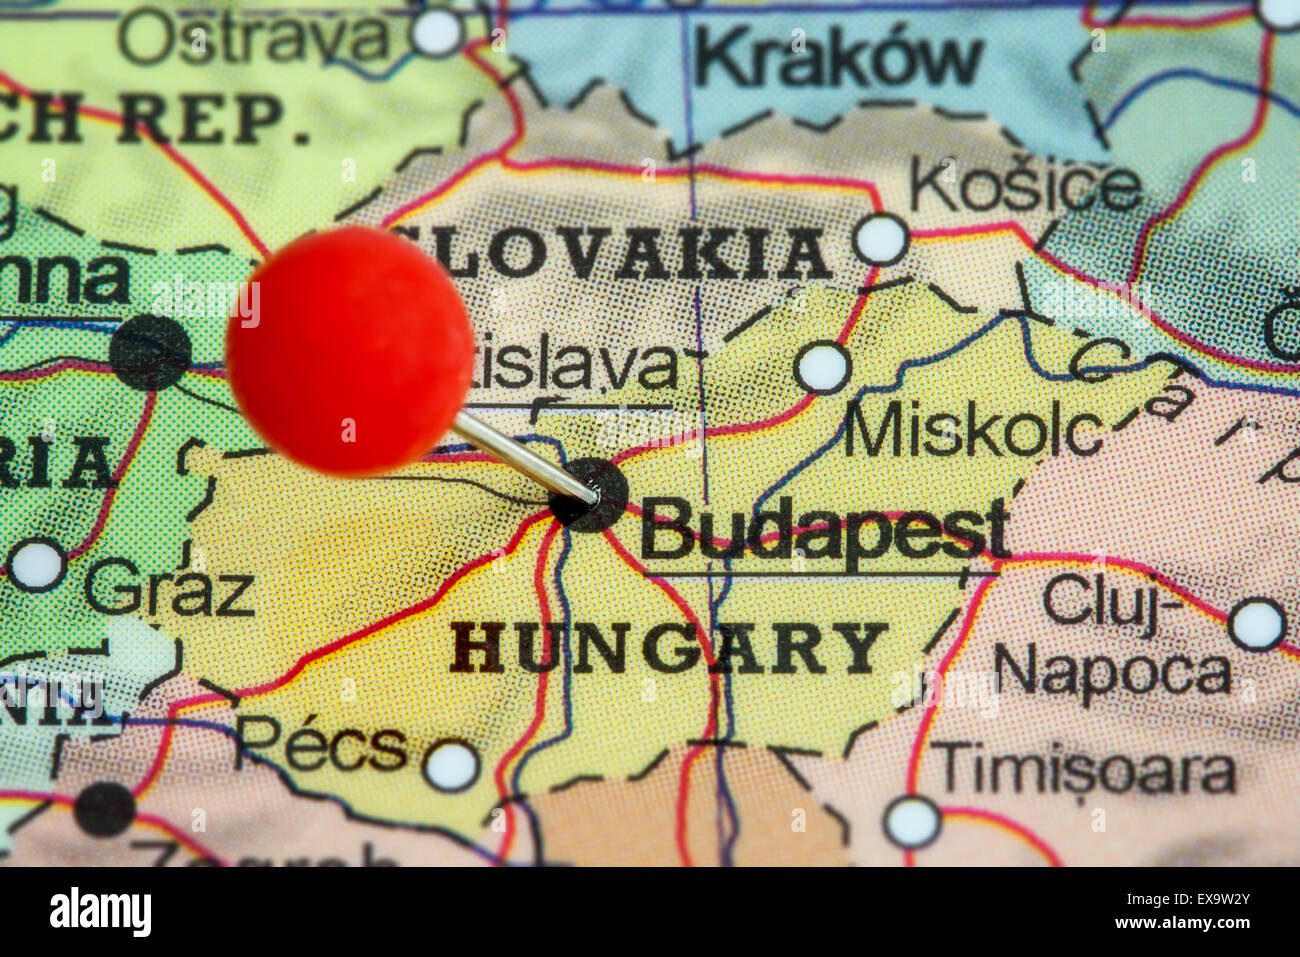 Close-up of a red pushpin on a map of Budapest, Hungary ... on bulgaria hungary map, capital of hungary map, czech republic hungary map, europe hungary map, austria map, budapest tourist attractions, hungary state map, bucharest hungary map, amsterdam netherlands map, ajka hungary map, old hungary map, budapest sights, romania map, switzerland map, bratislava hungary map, prague map, hungary on the map, albania map, budapest history, kassa hungary map,